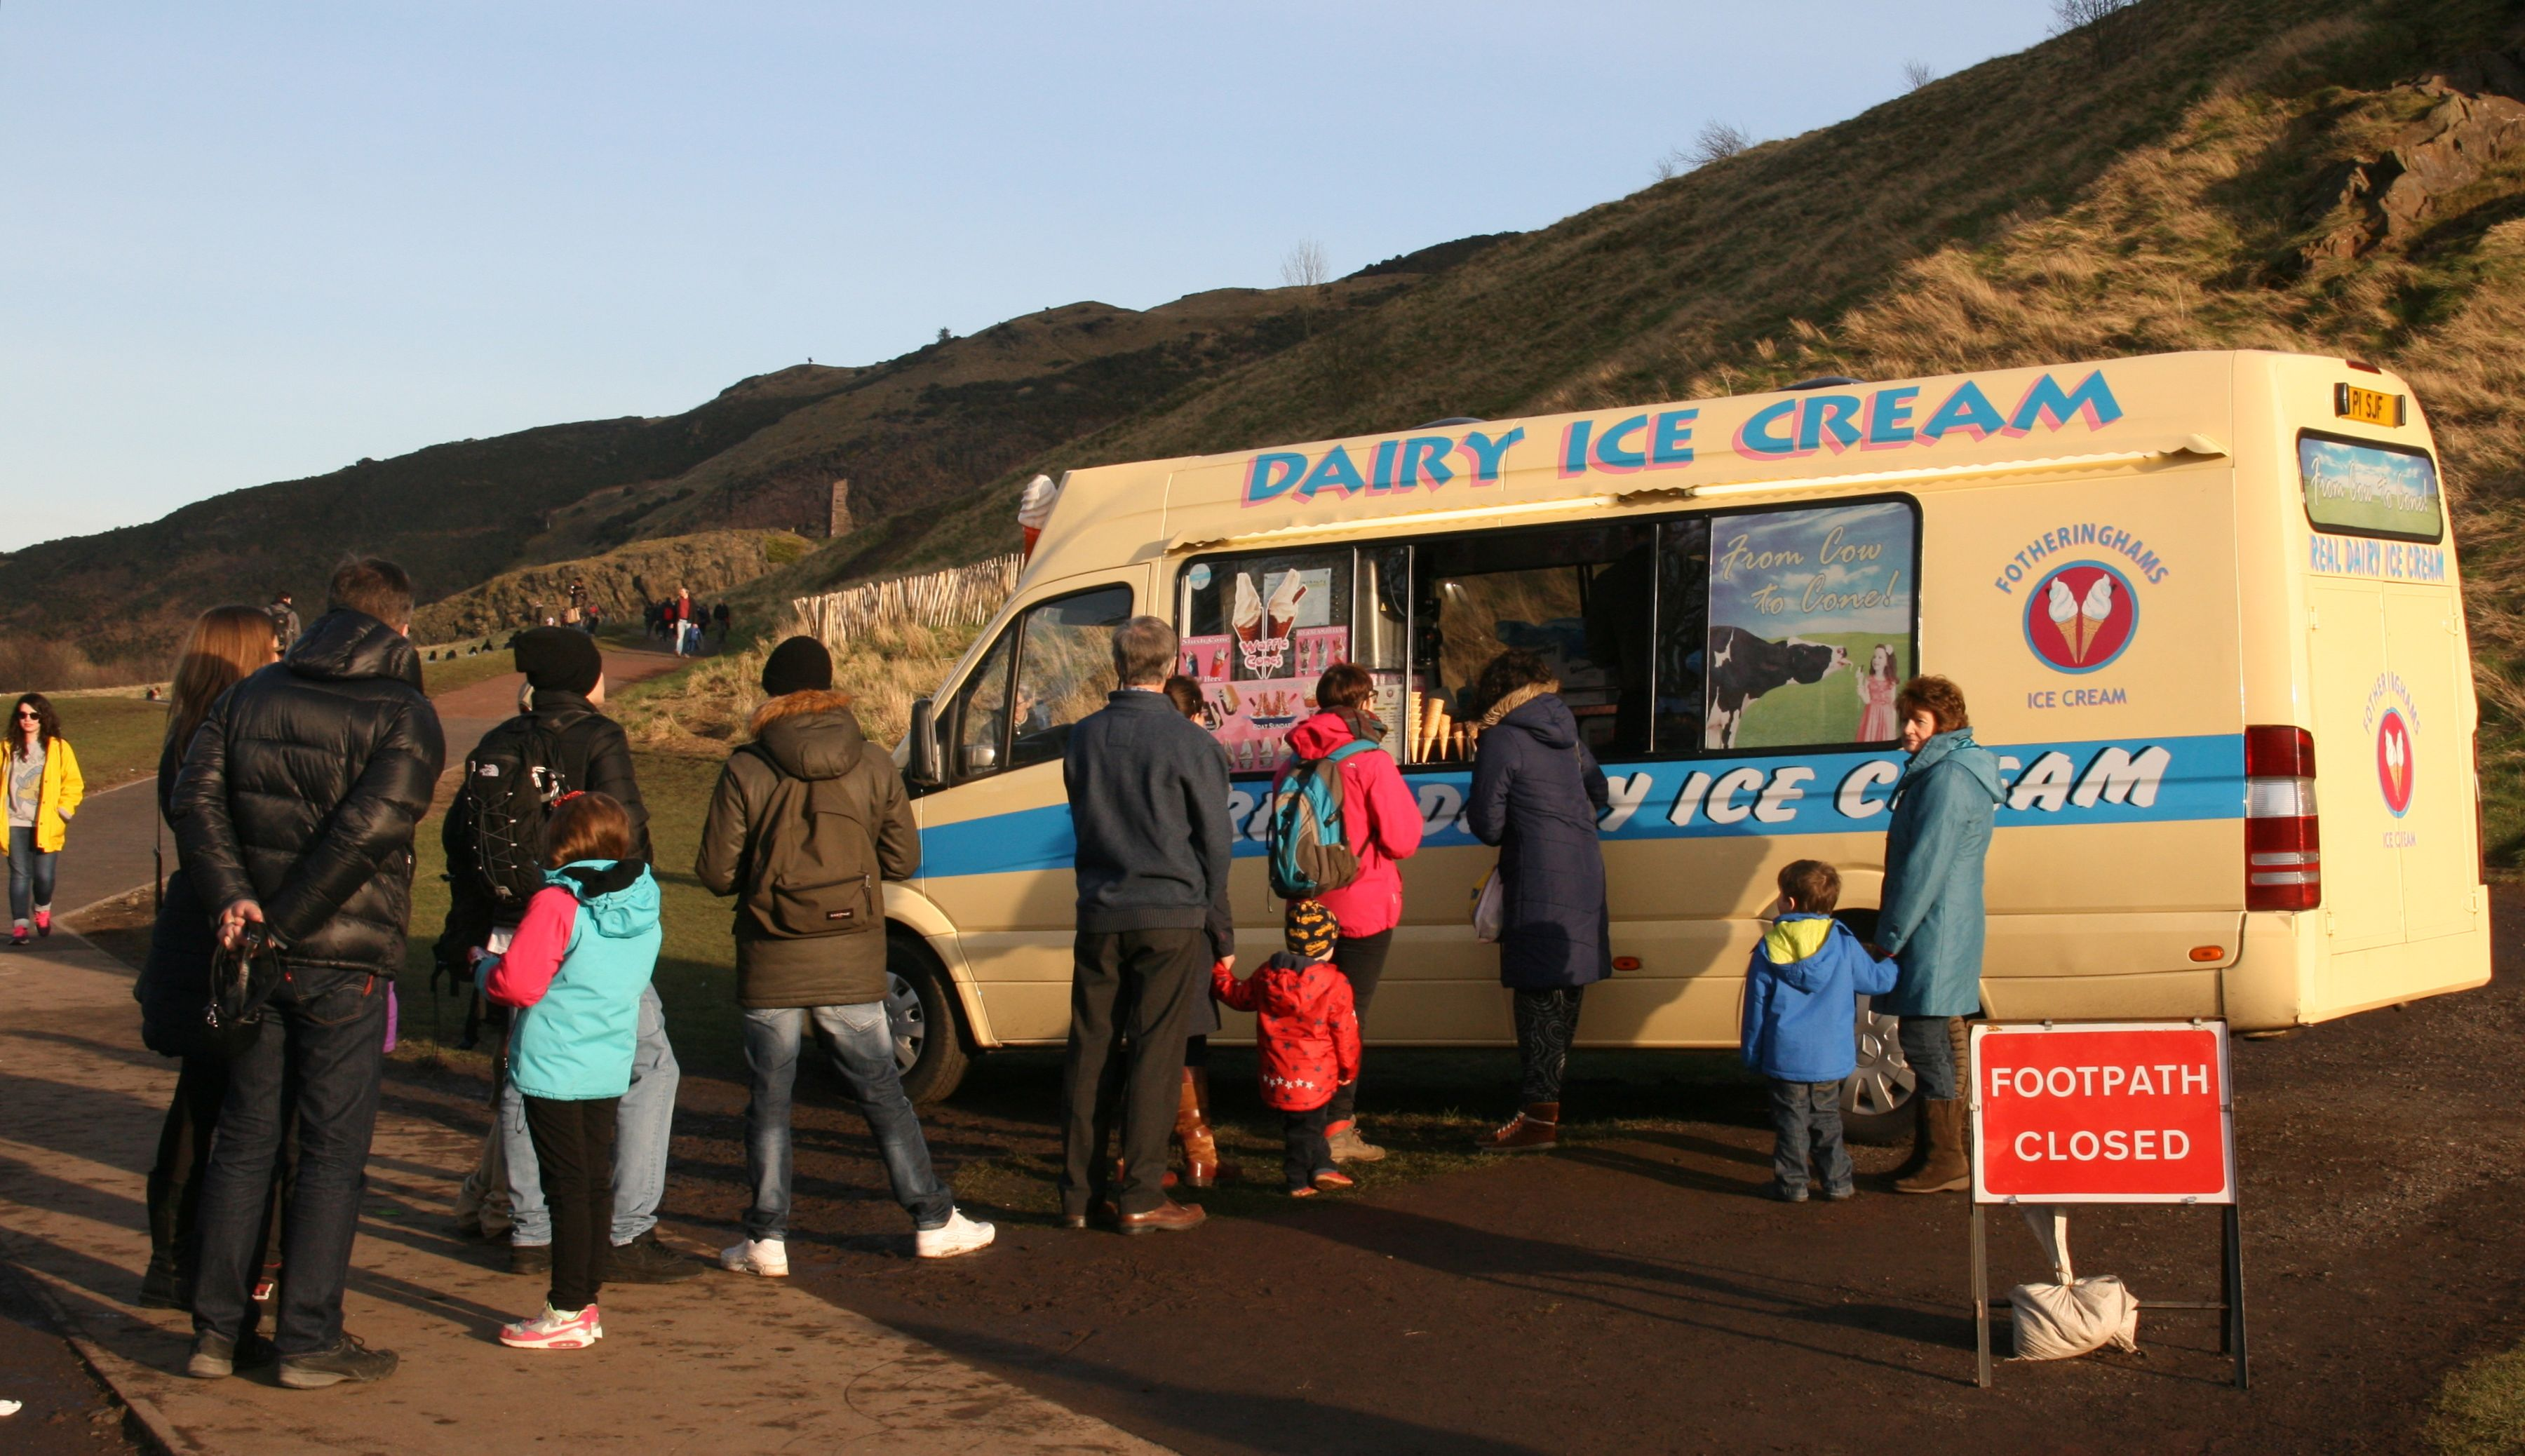 There was a lineup for ice cream, in February in Edinburgh's Holyrood Park at the foot of Arthur's Seat.